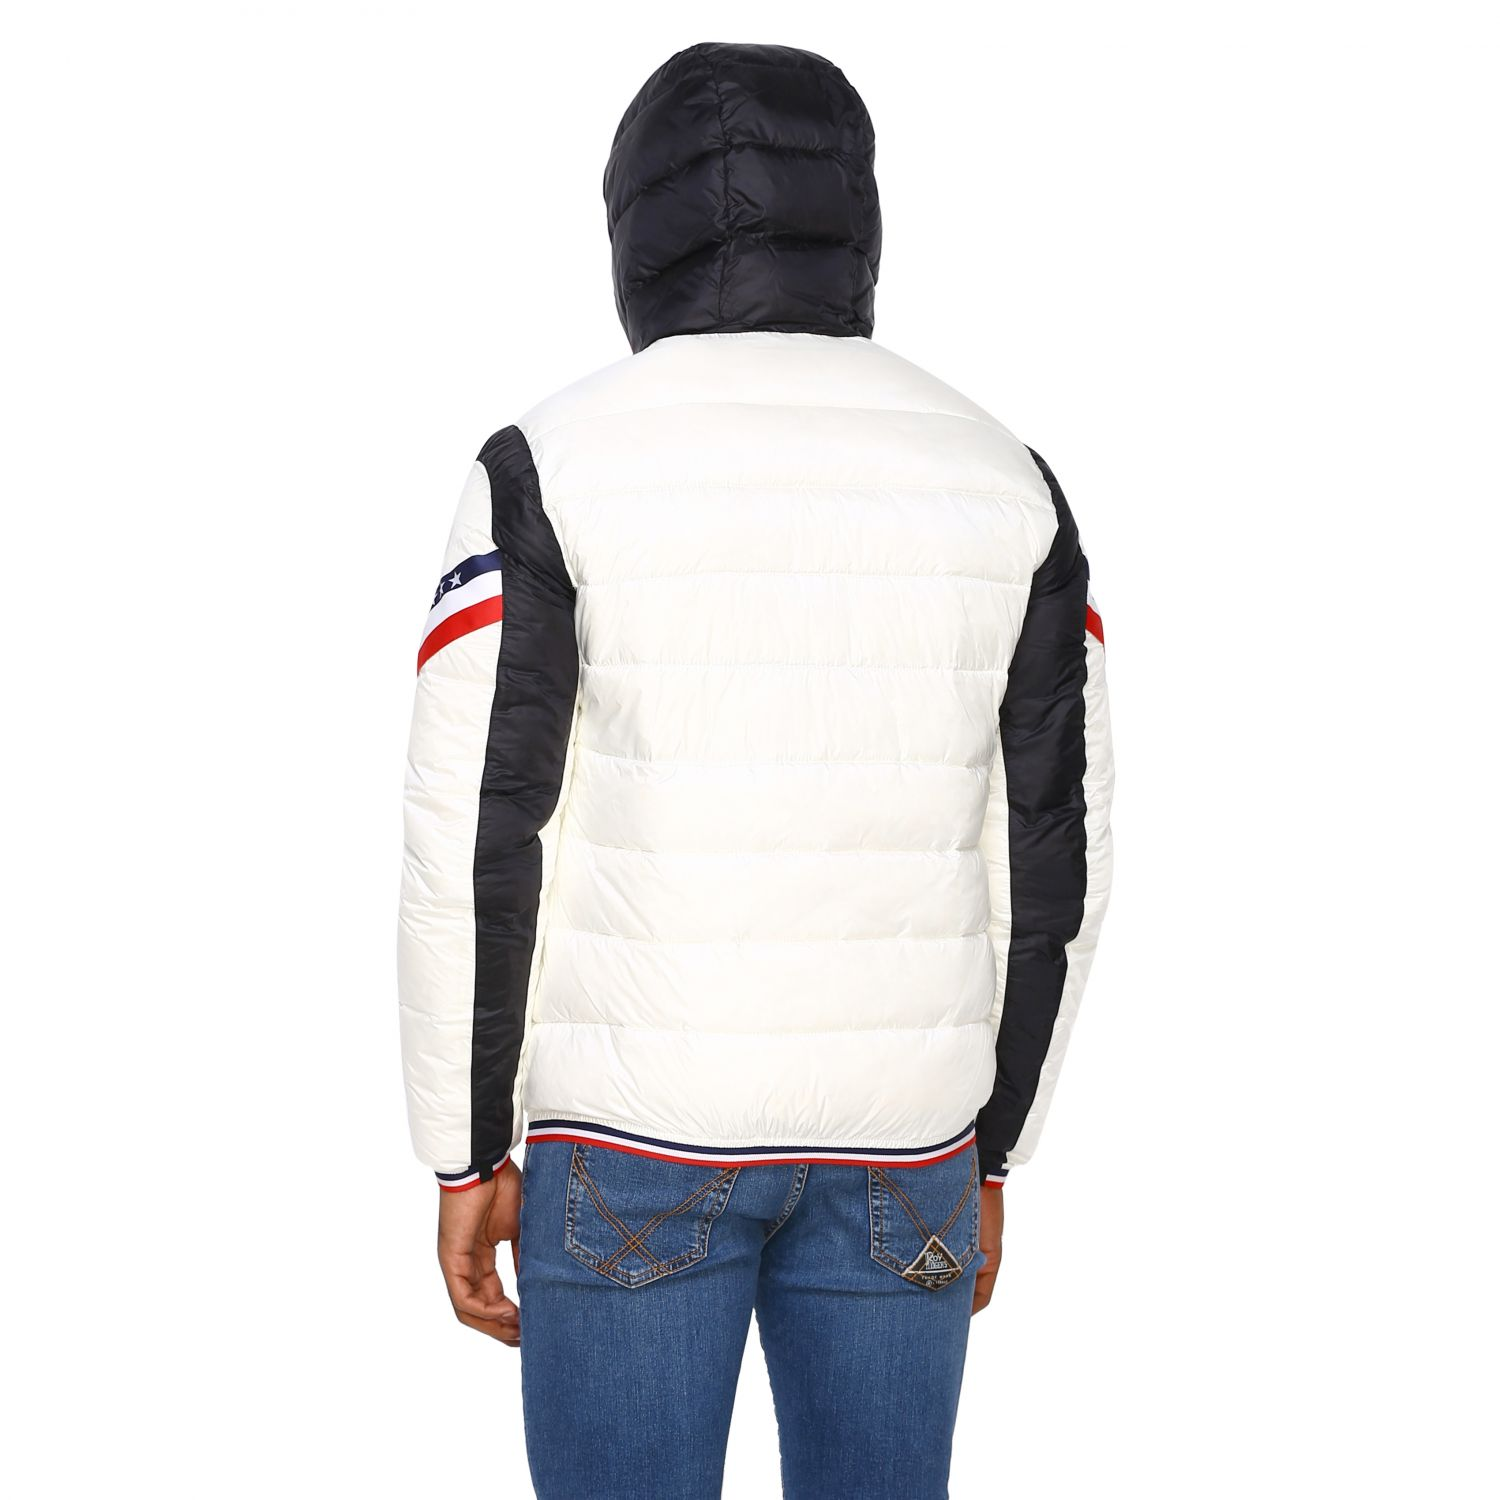 Jacket men Blauer white 3